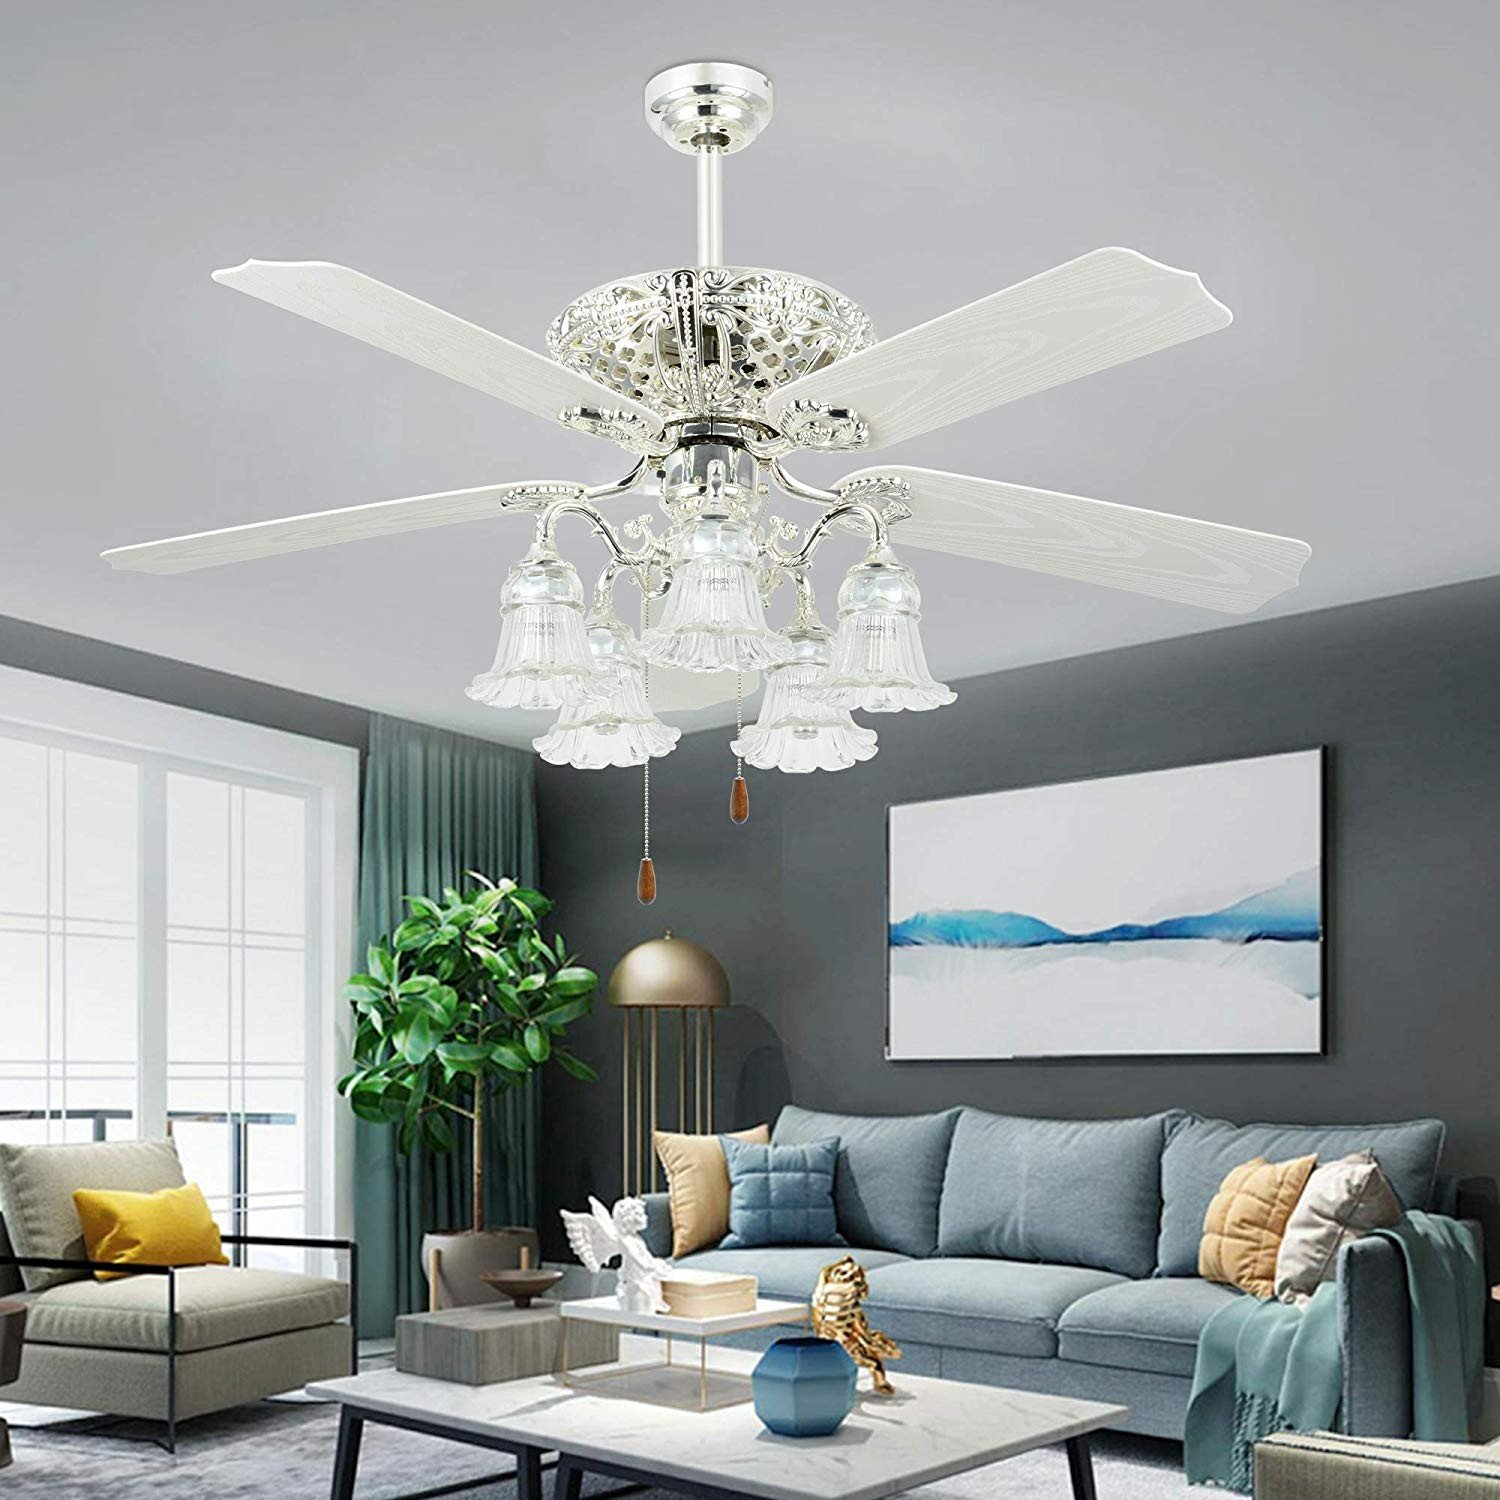 Bedroom Ceiling Fans with Light New White Ceiling Fan with Remote Control 5 Glass Light Cover Indoor Home Decoration Living Room Dinner Room Quiet Fans Chandelier 5 Plastic Reversible